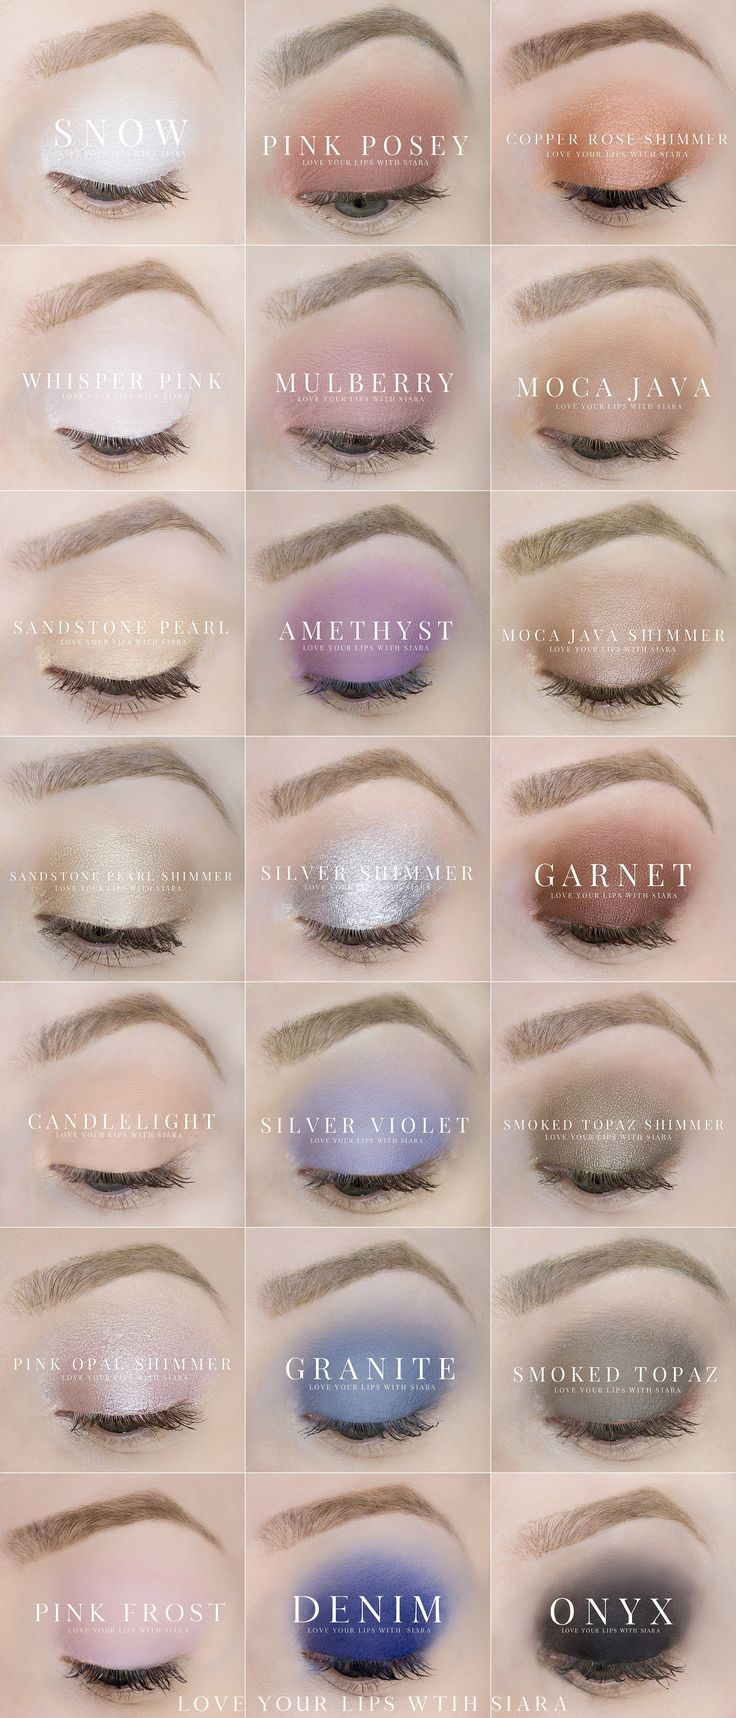 ShadowSense is smudge proof and waterproof! Got questions? Let me know. :) SeneGence Distributor ID: 351172. Email: prettypoutyperfection@gmail.com. FB Group: Pretty Pouty Perfection